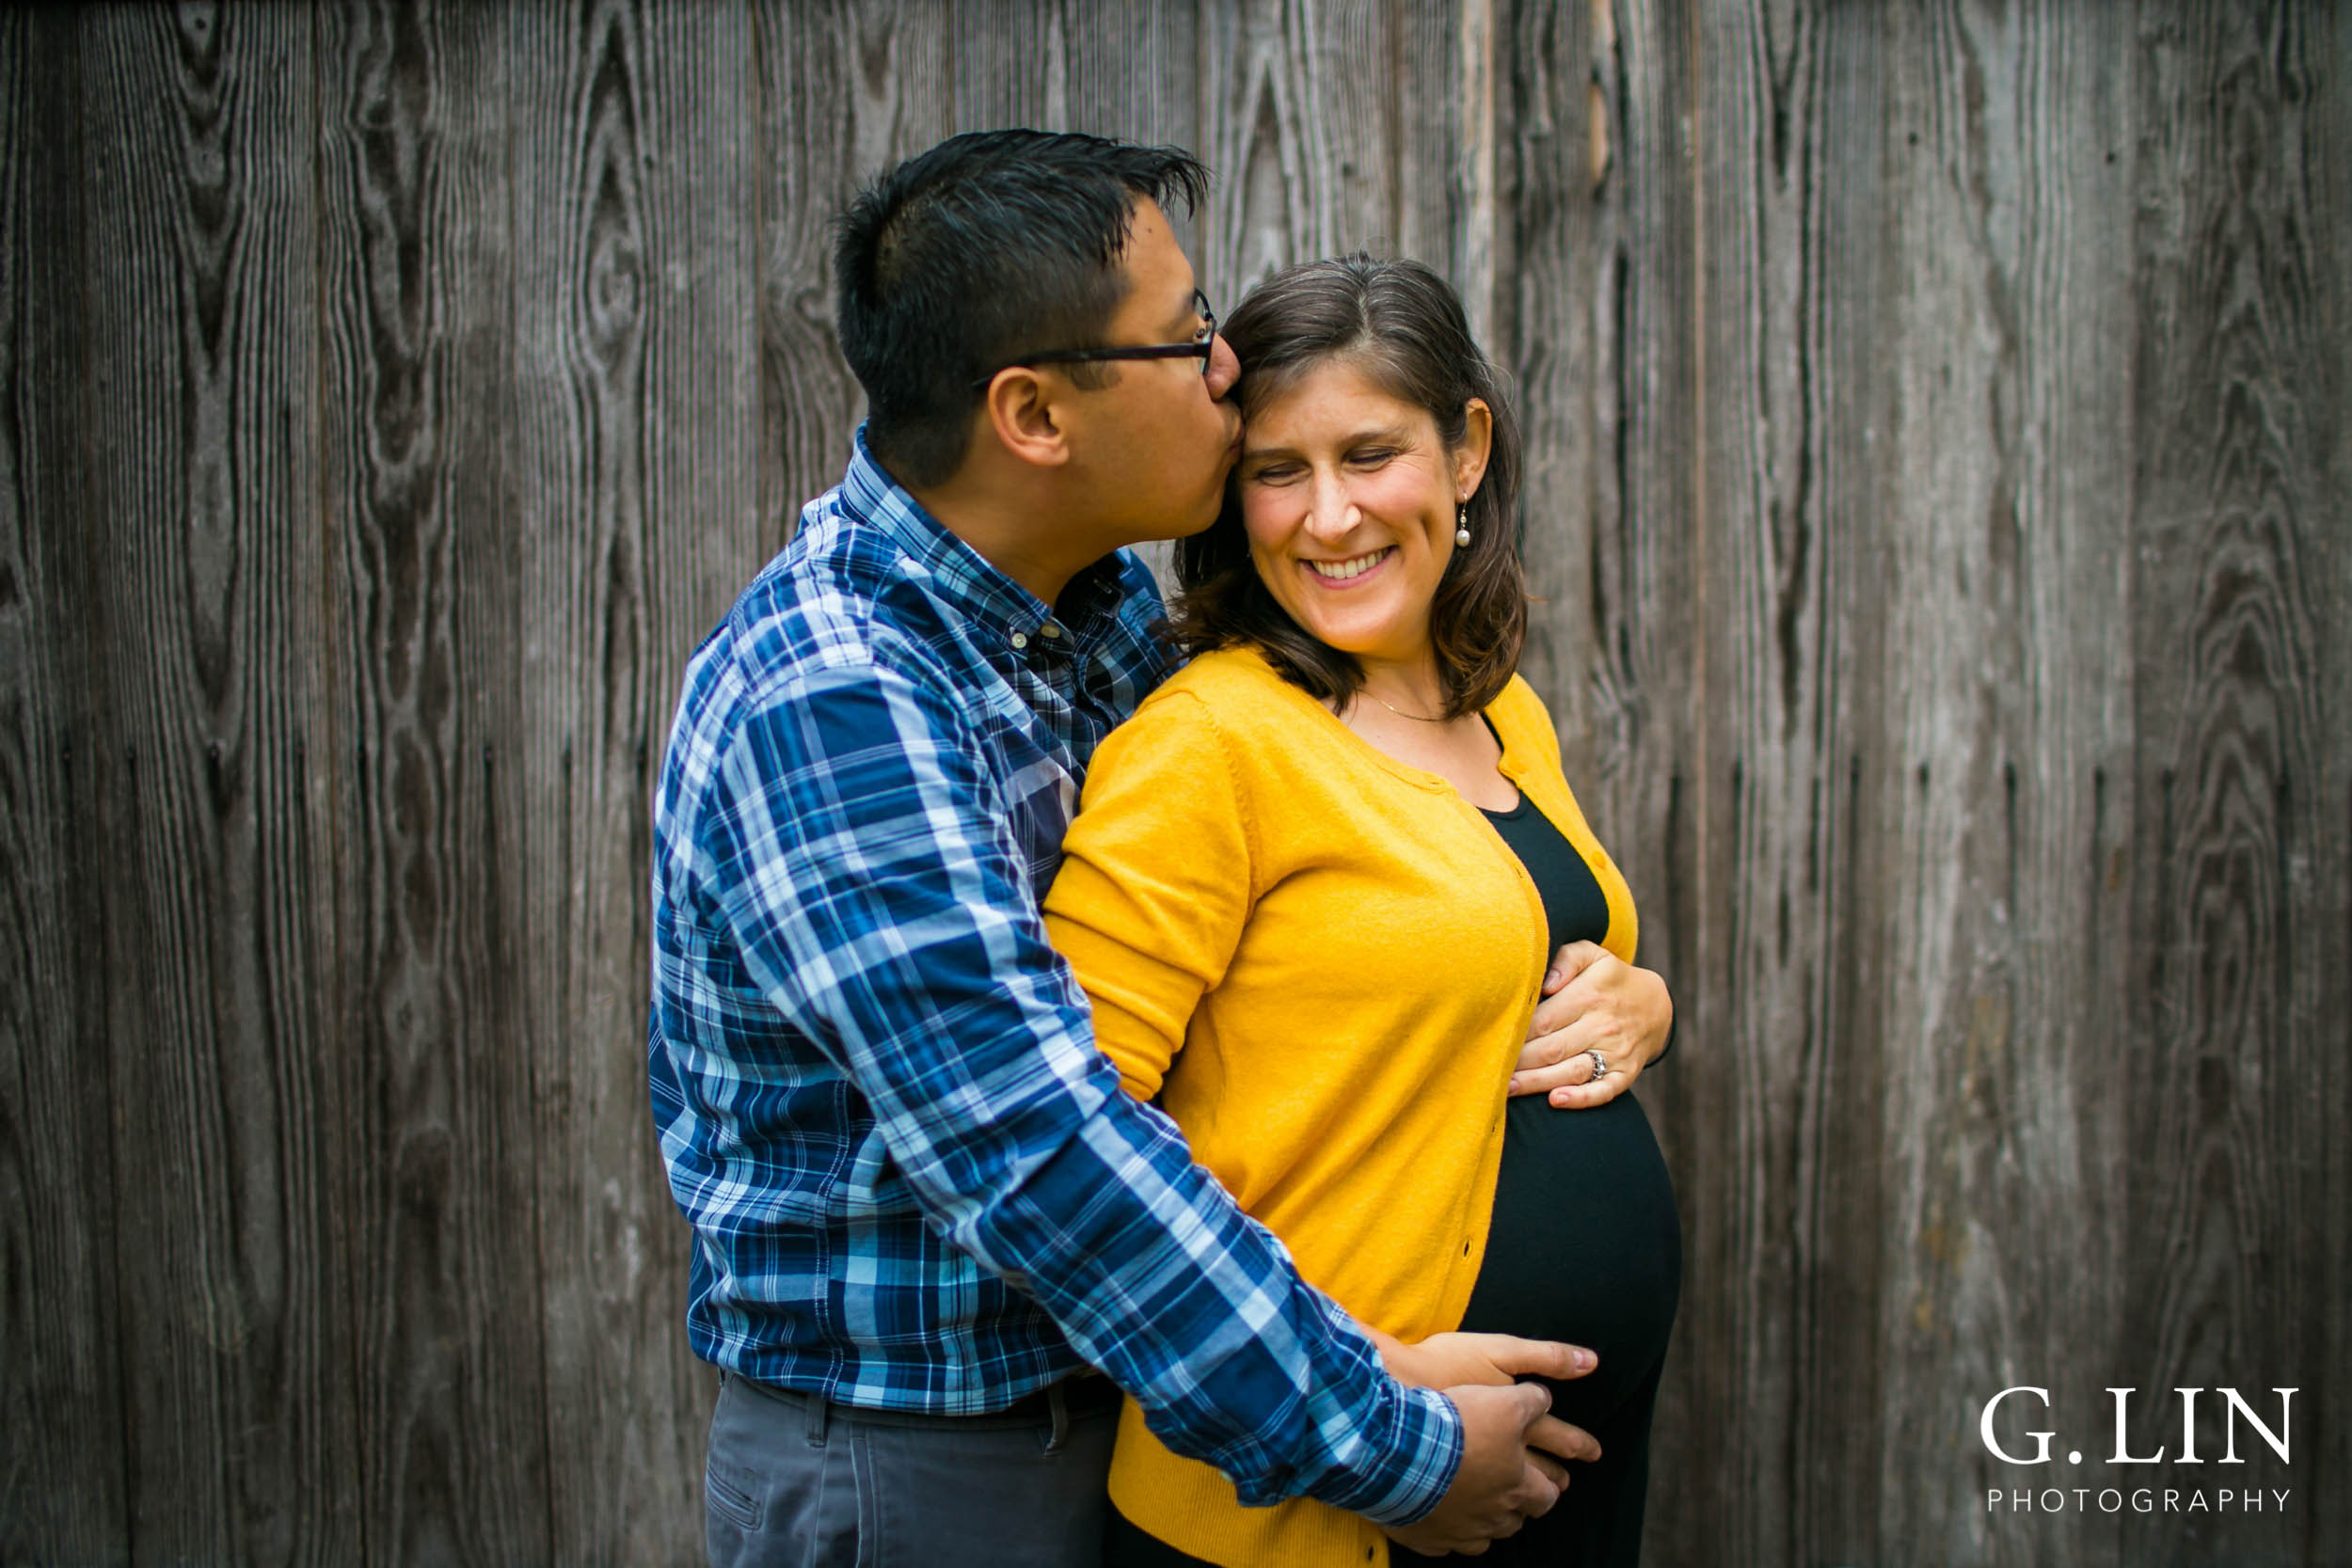 Durham Family Photography | G. Lin Photography | Maternity portrait